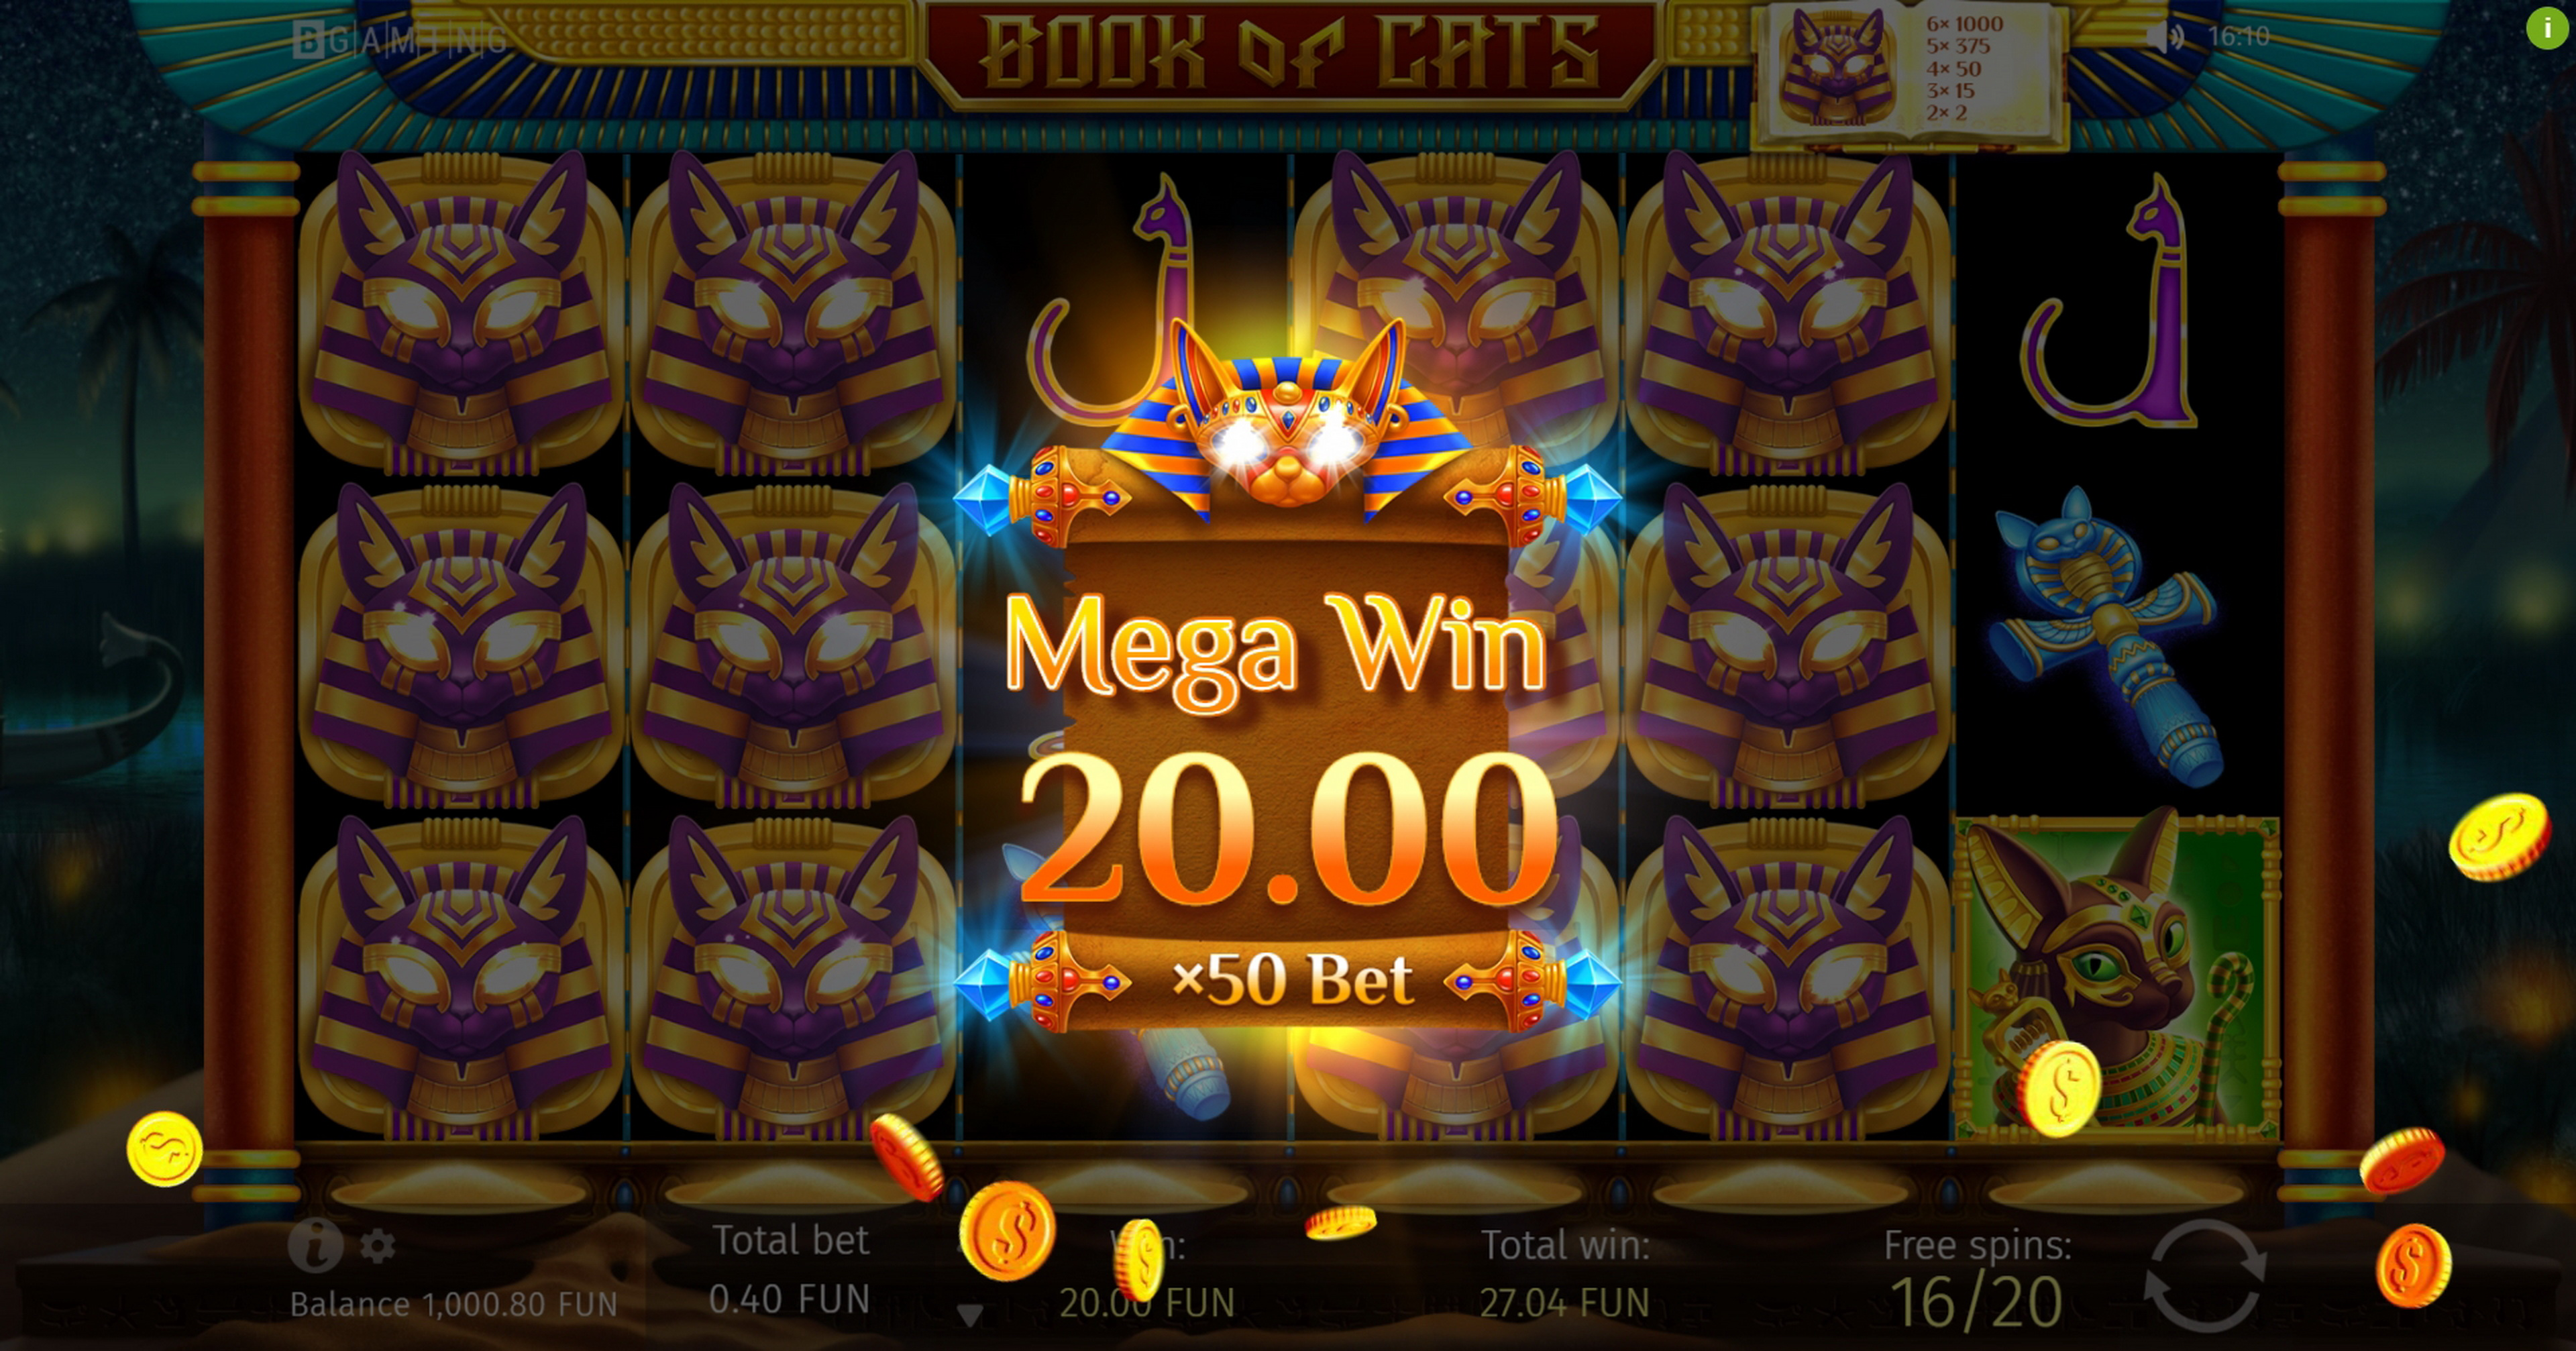 Win Money in Book Of Cats Free Slot Game by BGAMING